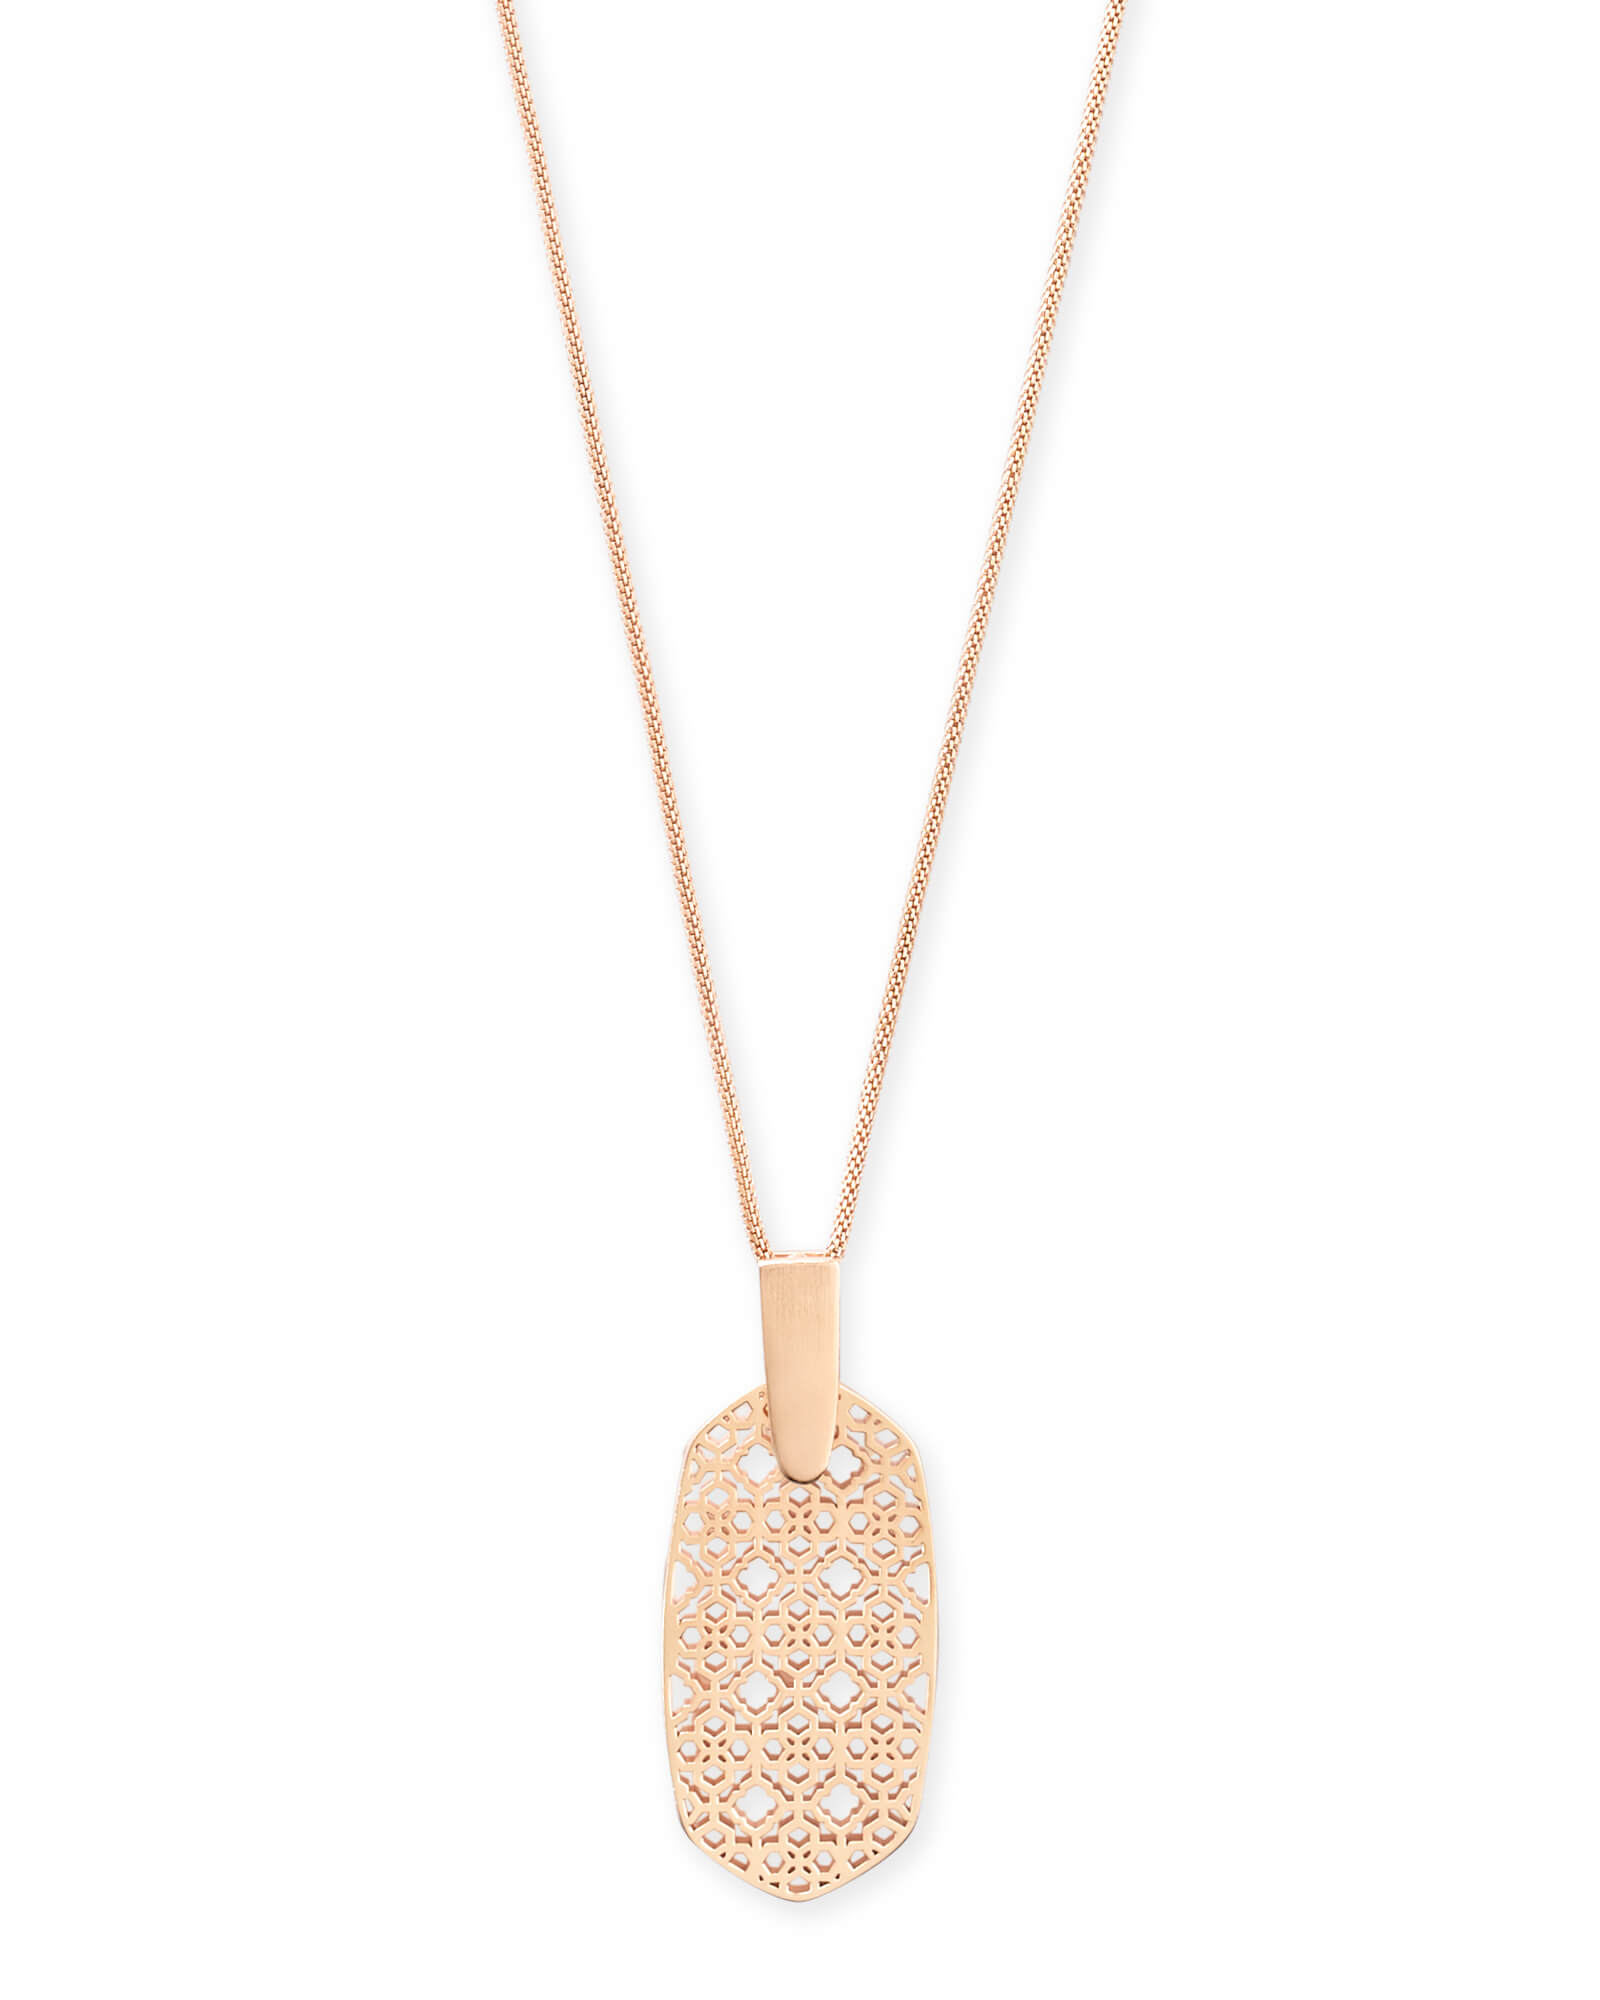 Inez Rose Gold Long Pendant Necklace in Rose Gold Filigree